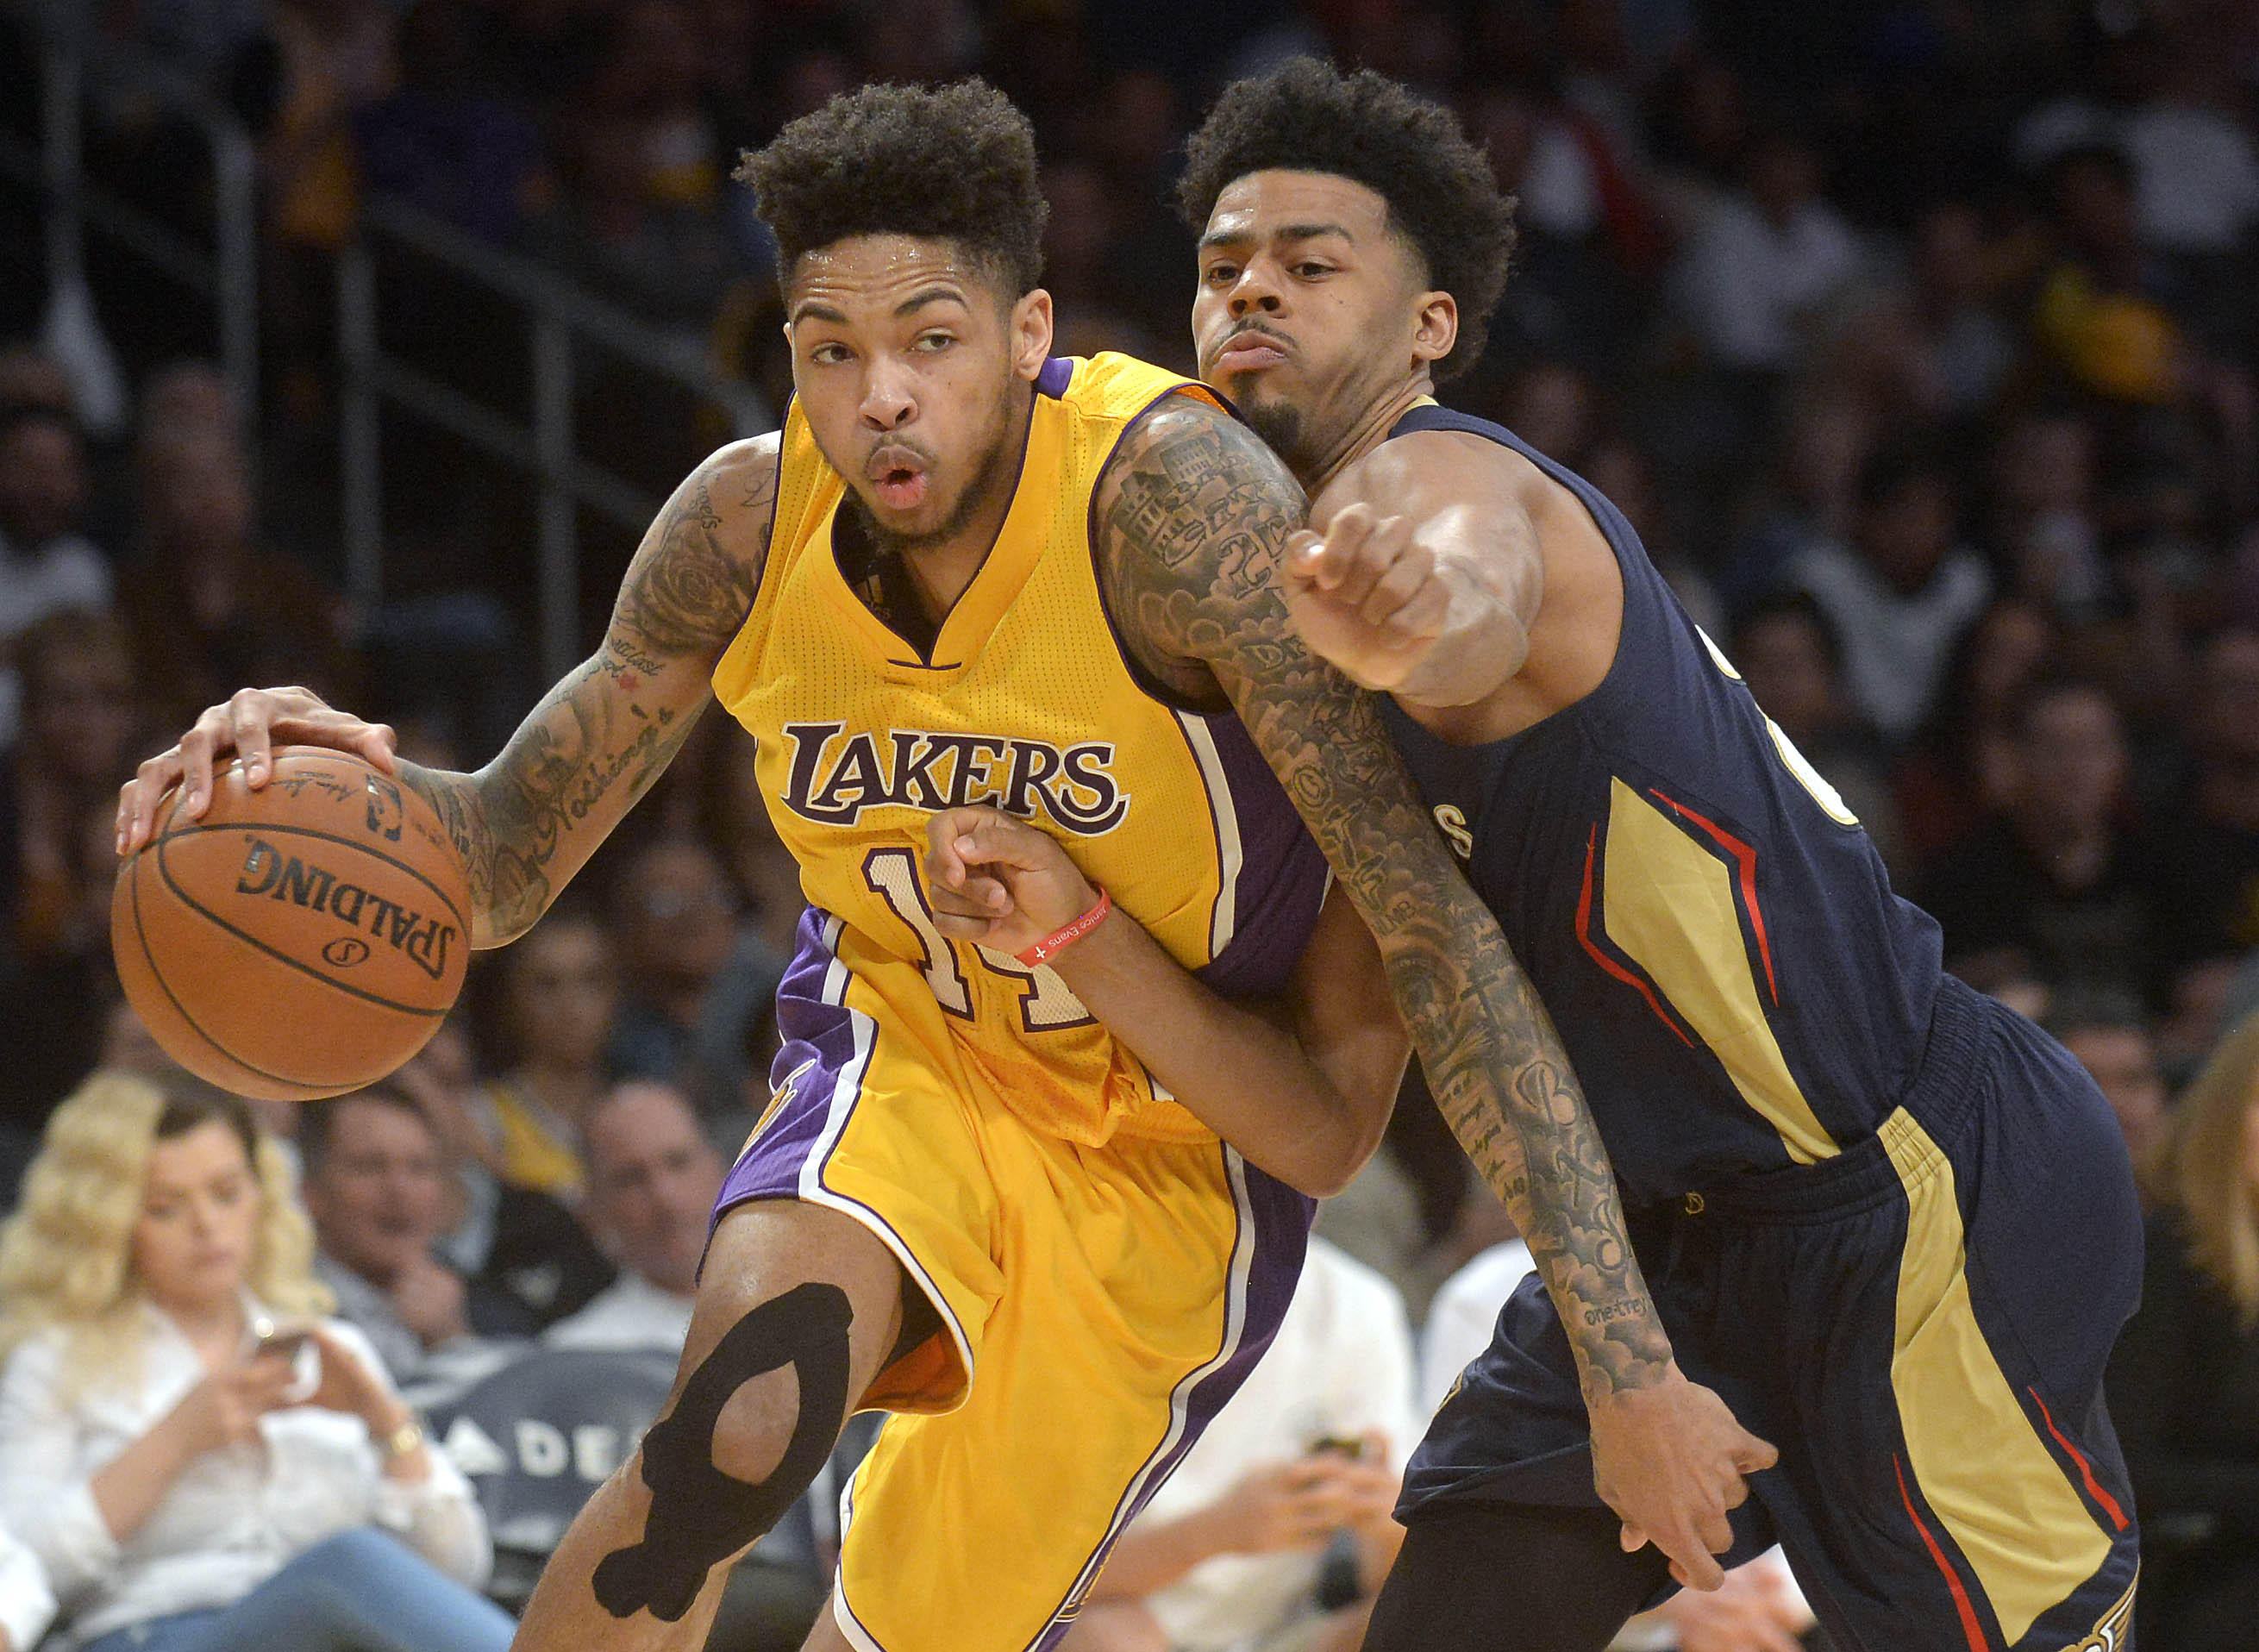 10007137-nba-new-orleans-pelicans-at-los-angeles-lakers